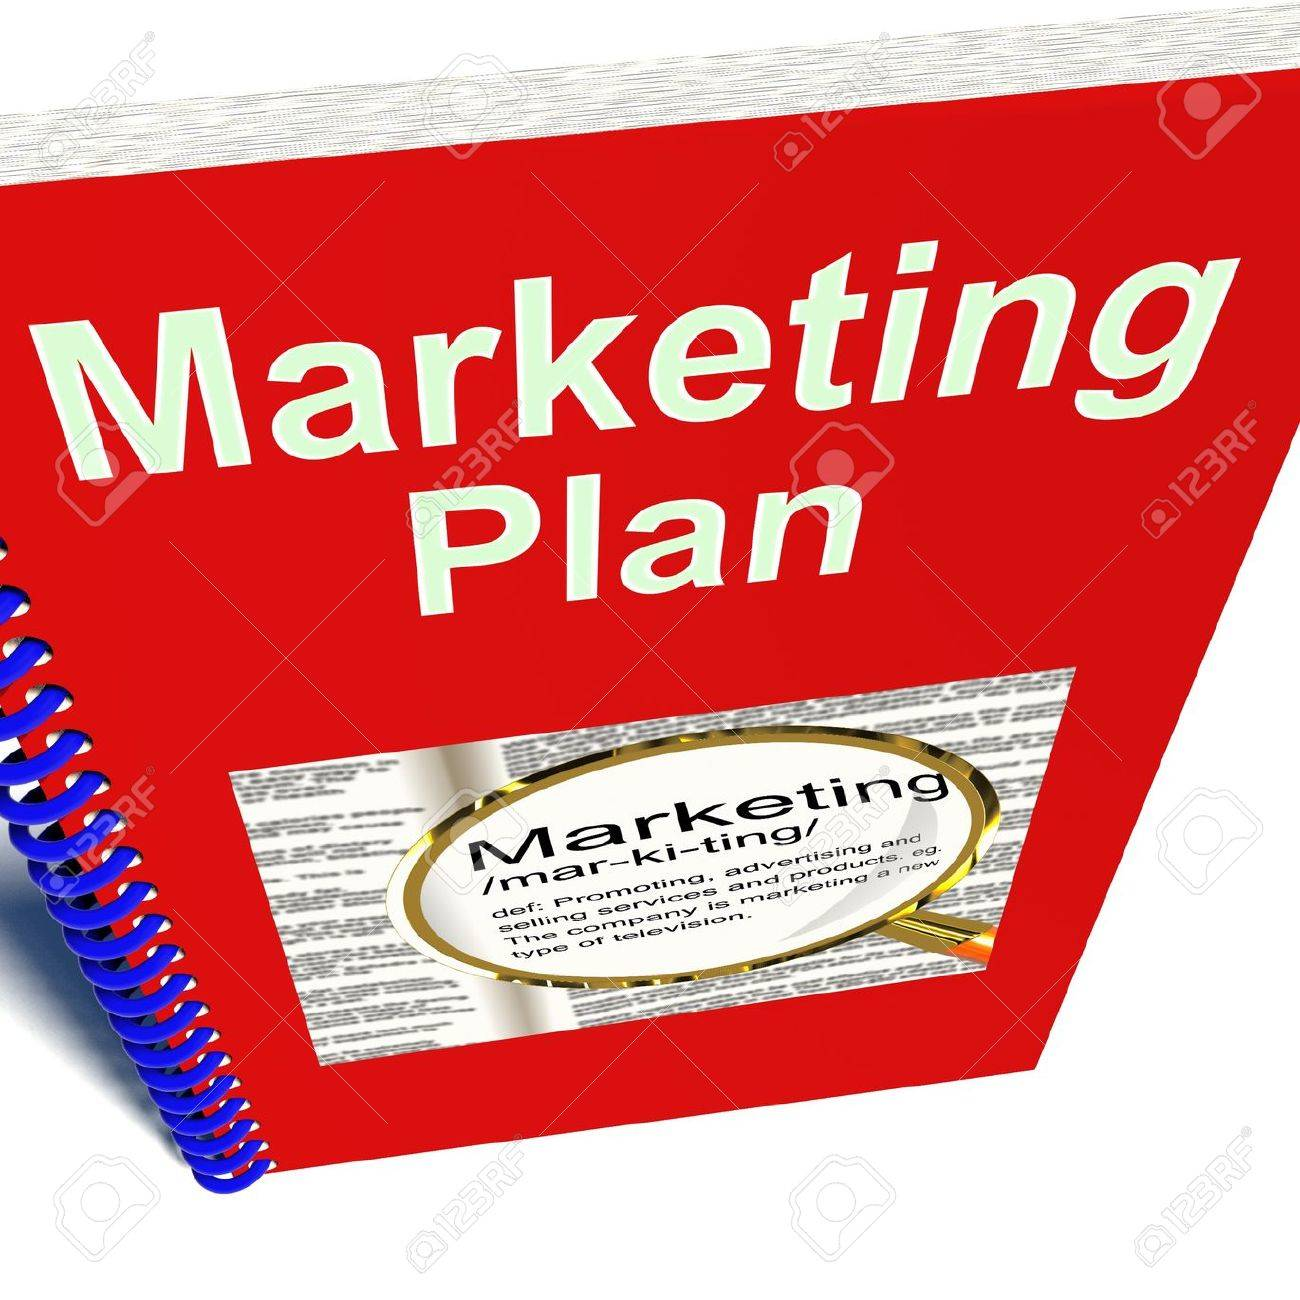 marketing plan of biscuit One good cookie: a business plan download one good cookie: a business plan uploaded by v hire damrauer.